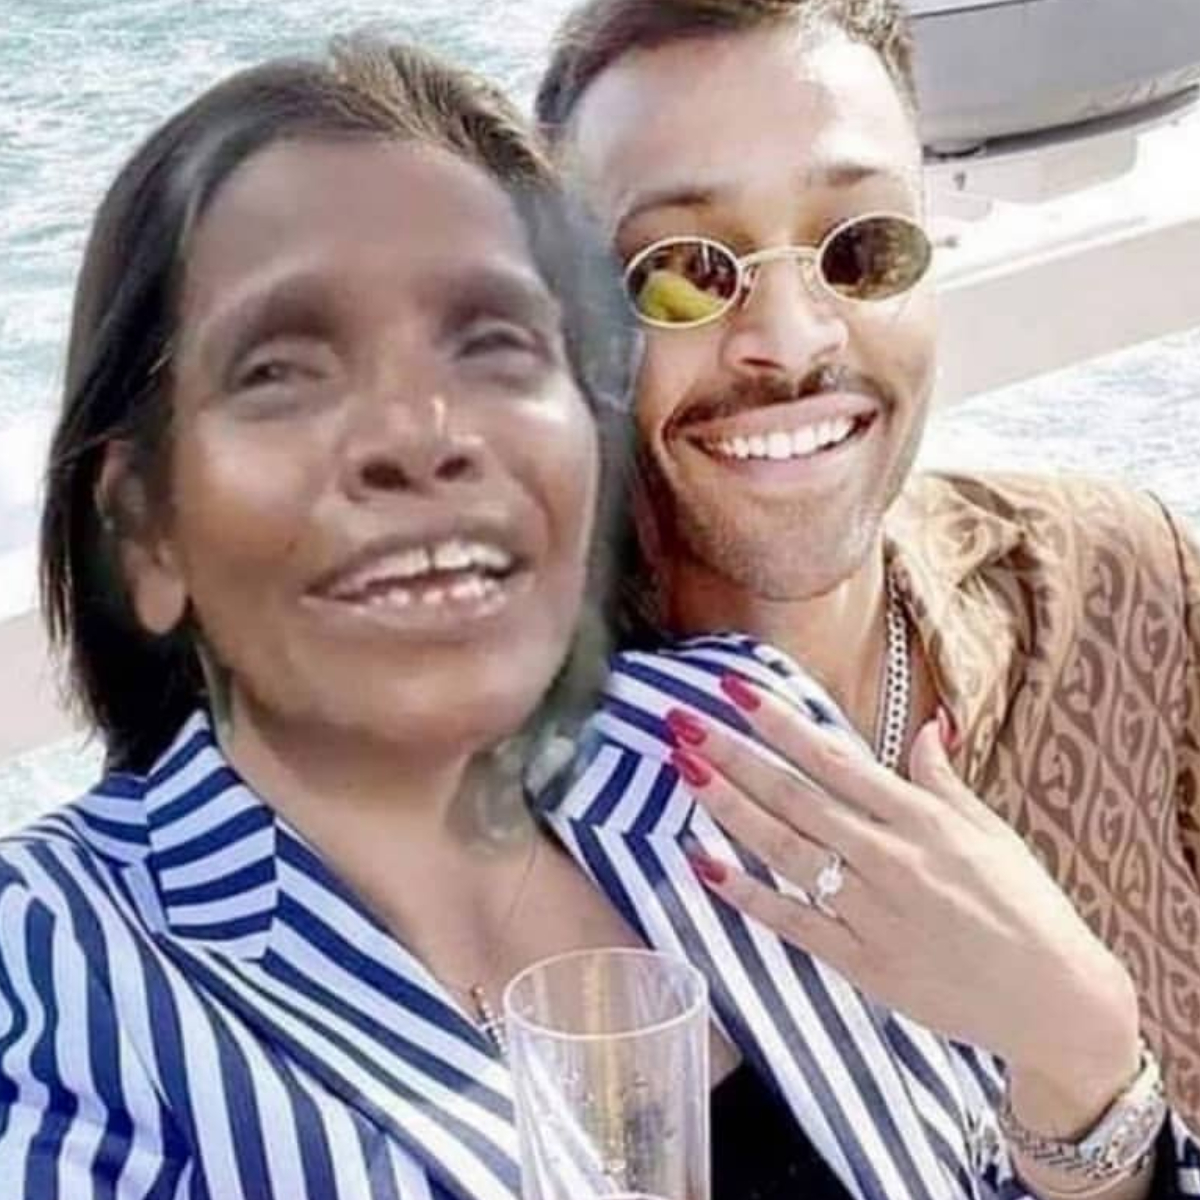 Natasa Stankovic and Hardik Pandya's pictures lead to memes; Trolls add Ranu Mondal's pic with the cricketer